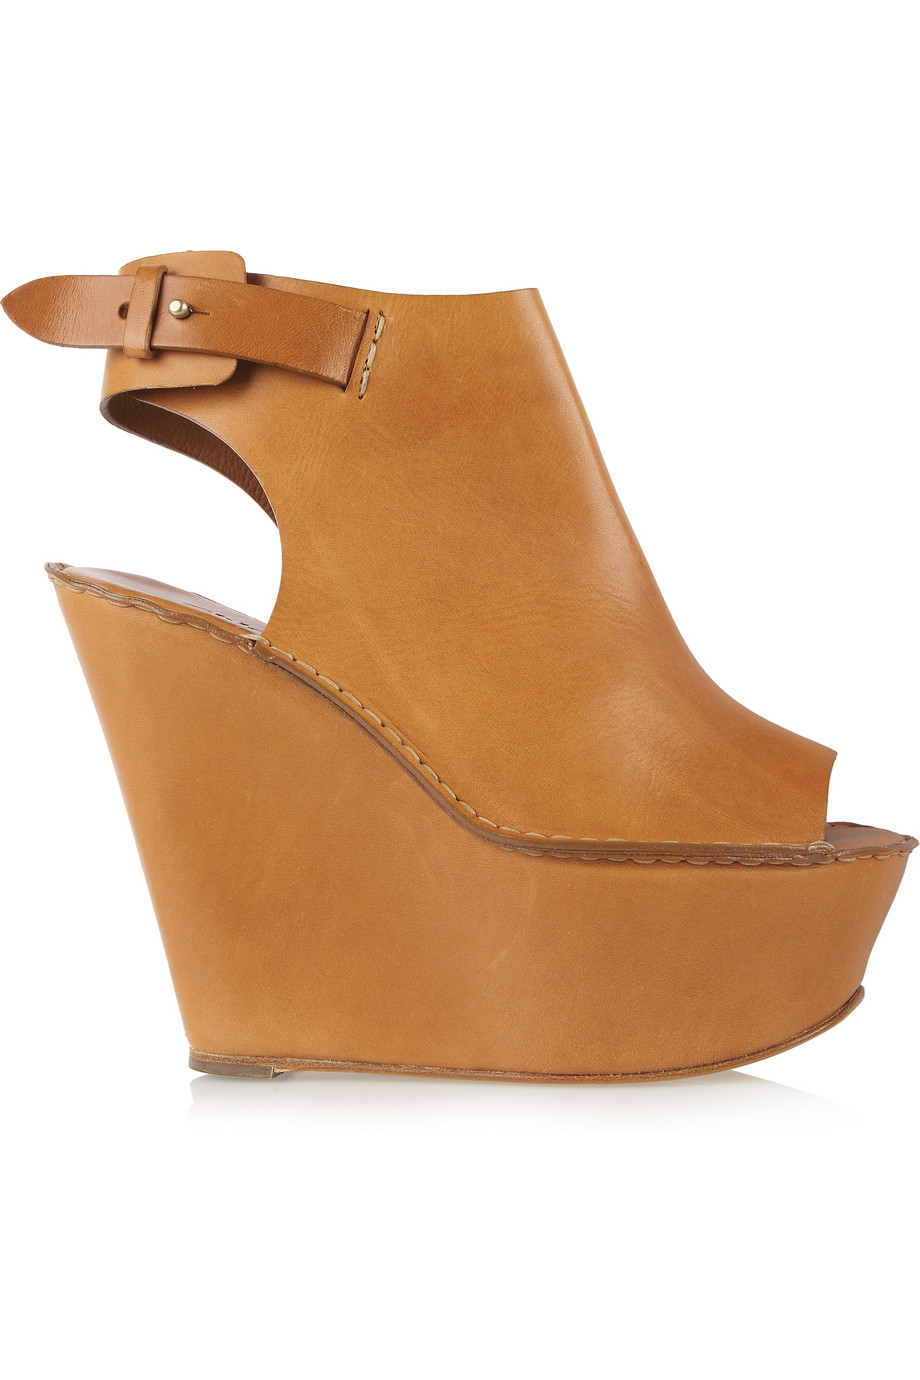 Chlo 233 Peep Toe Leather Wedges In Brown Lyst